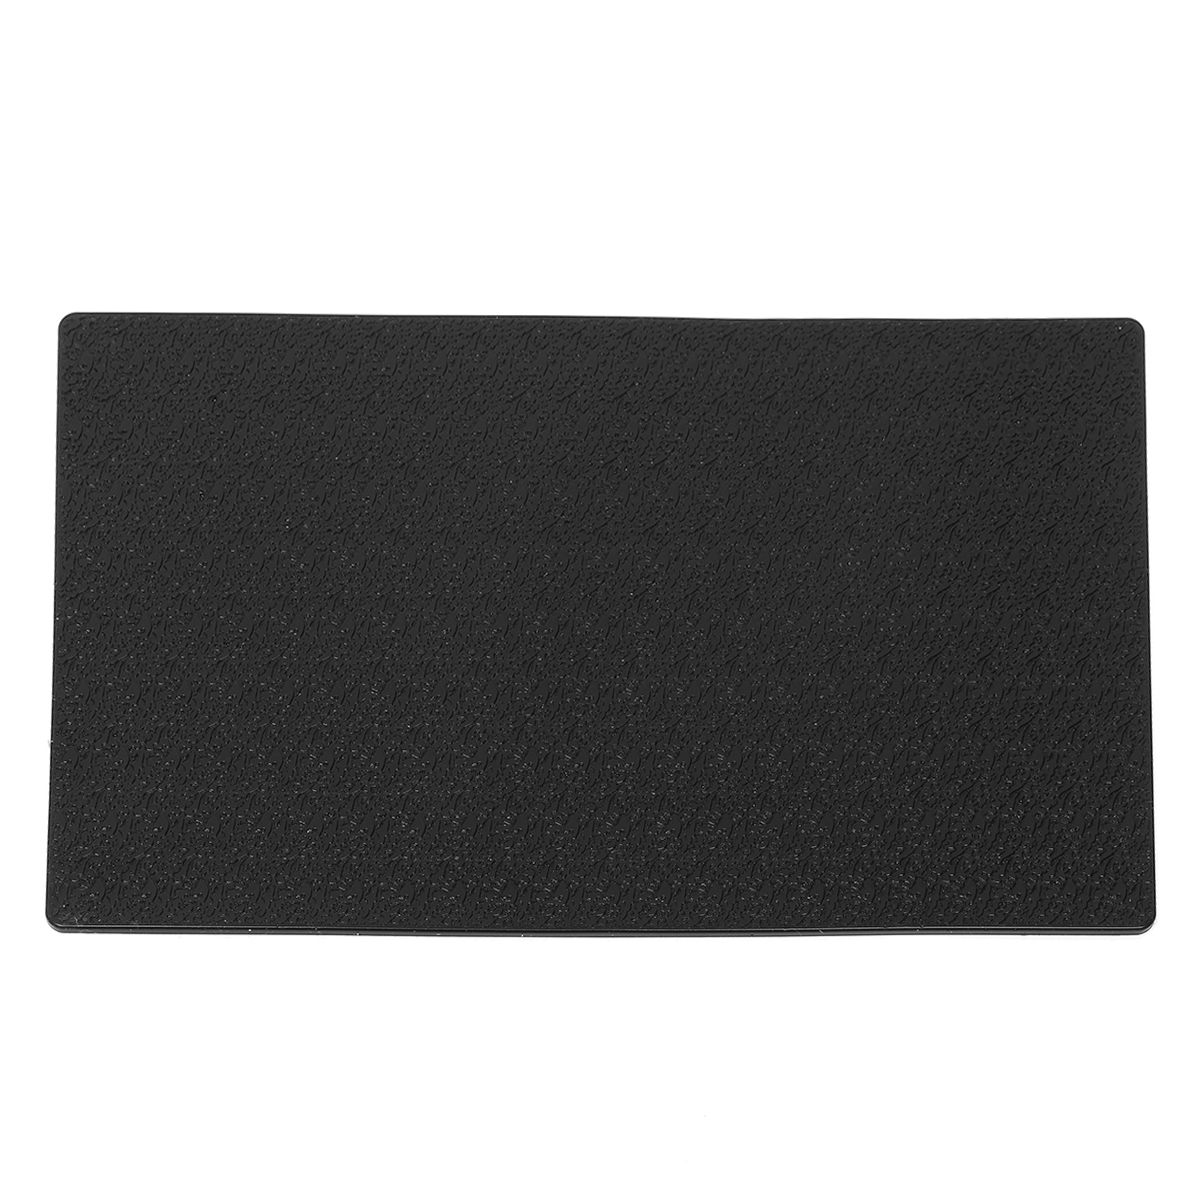 28x18cm Extra Large XL Sticky Pad Dashboard Mat Premium Anti-Slip Gel Pads